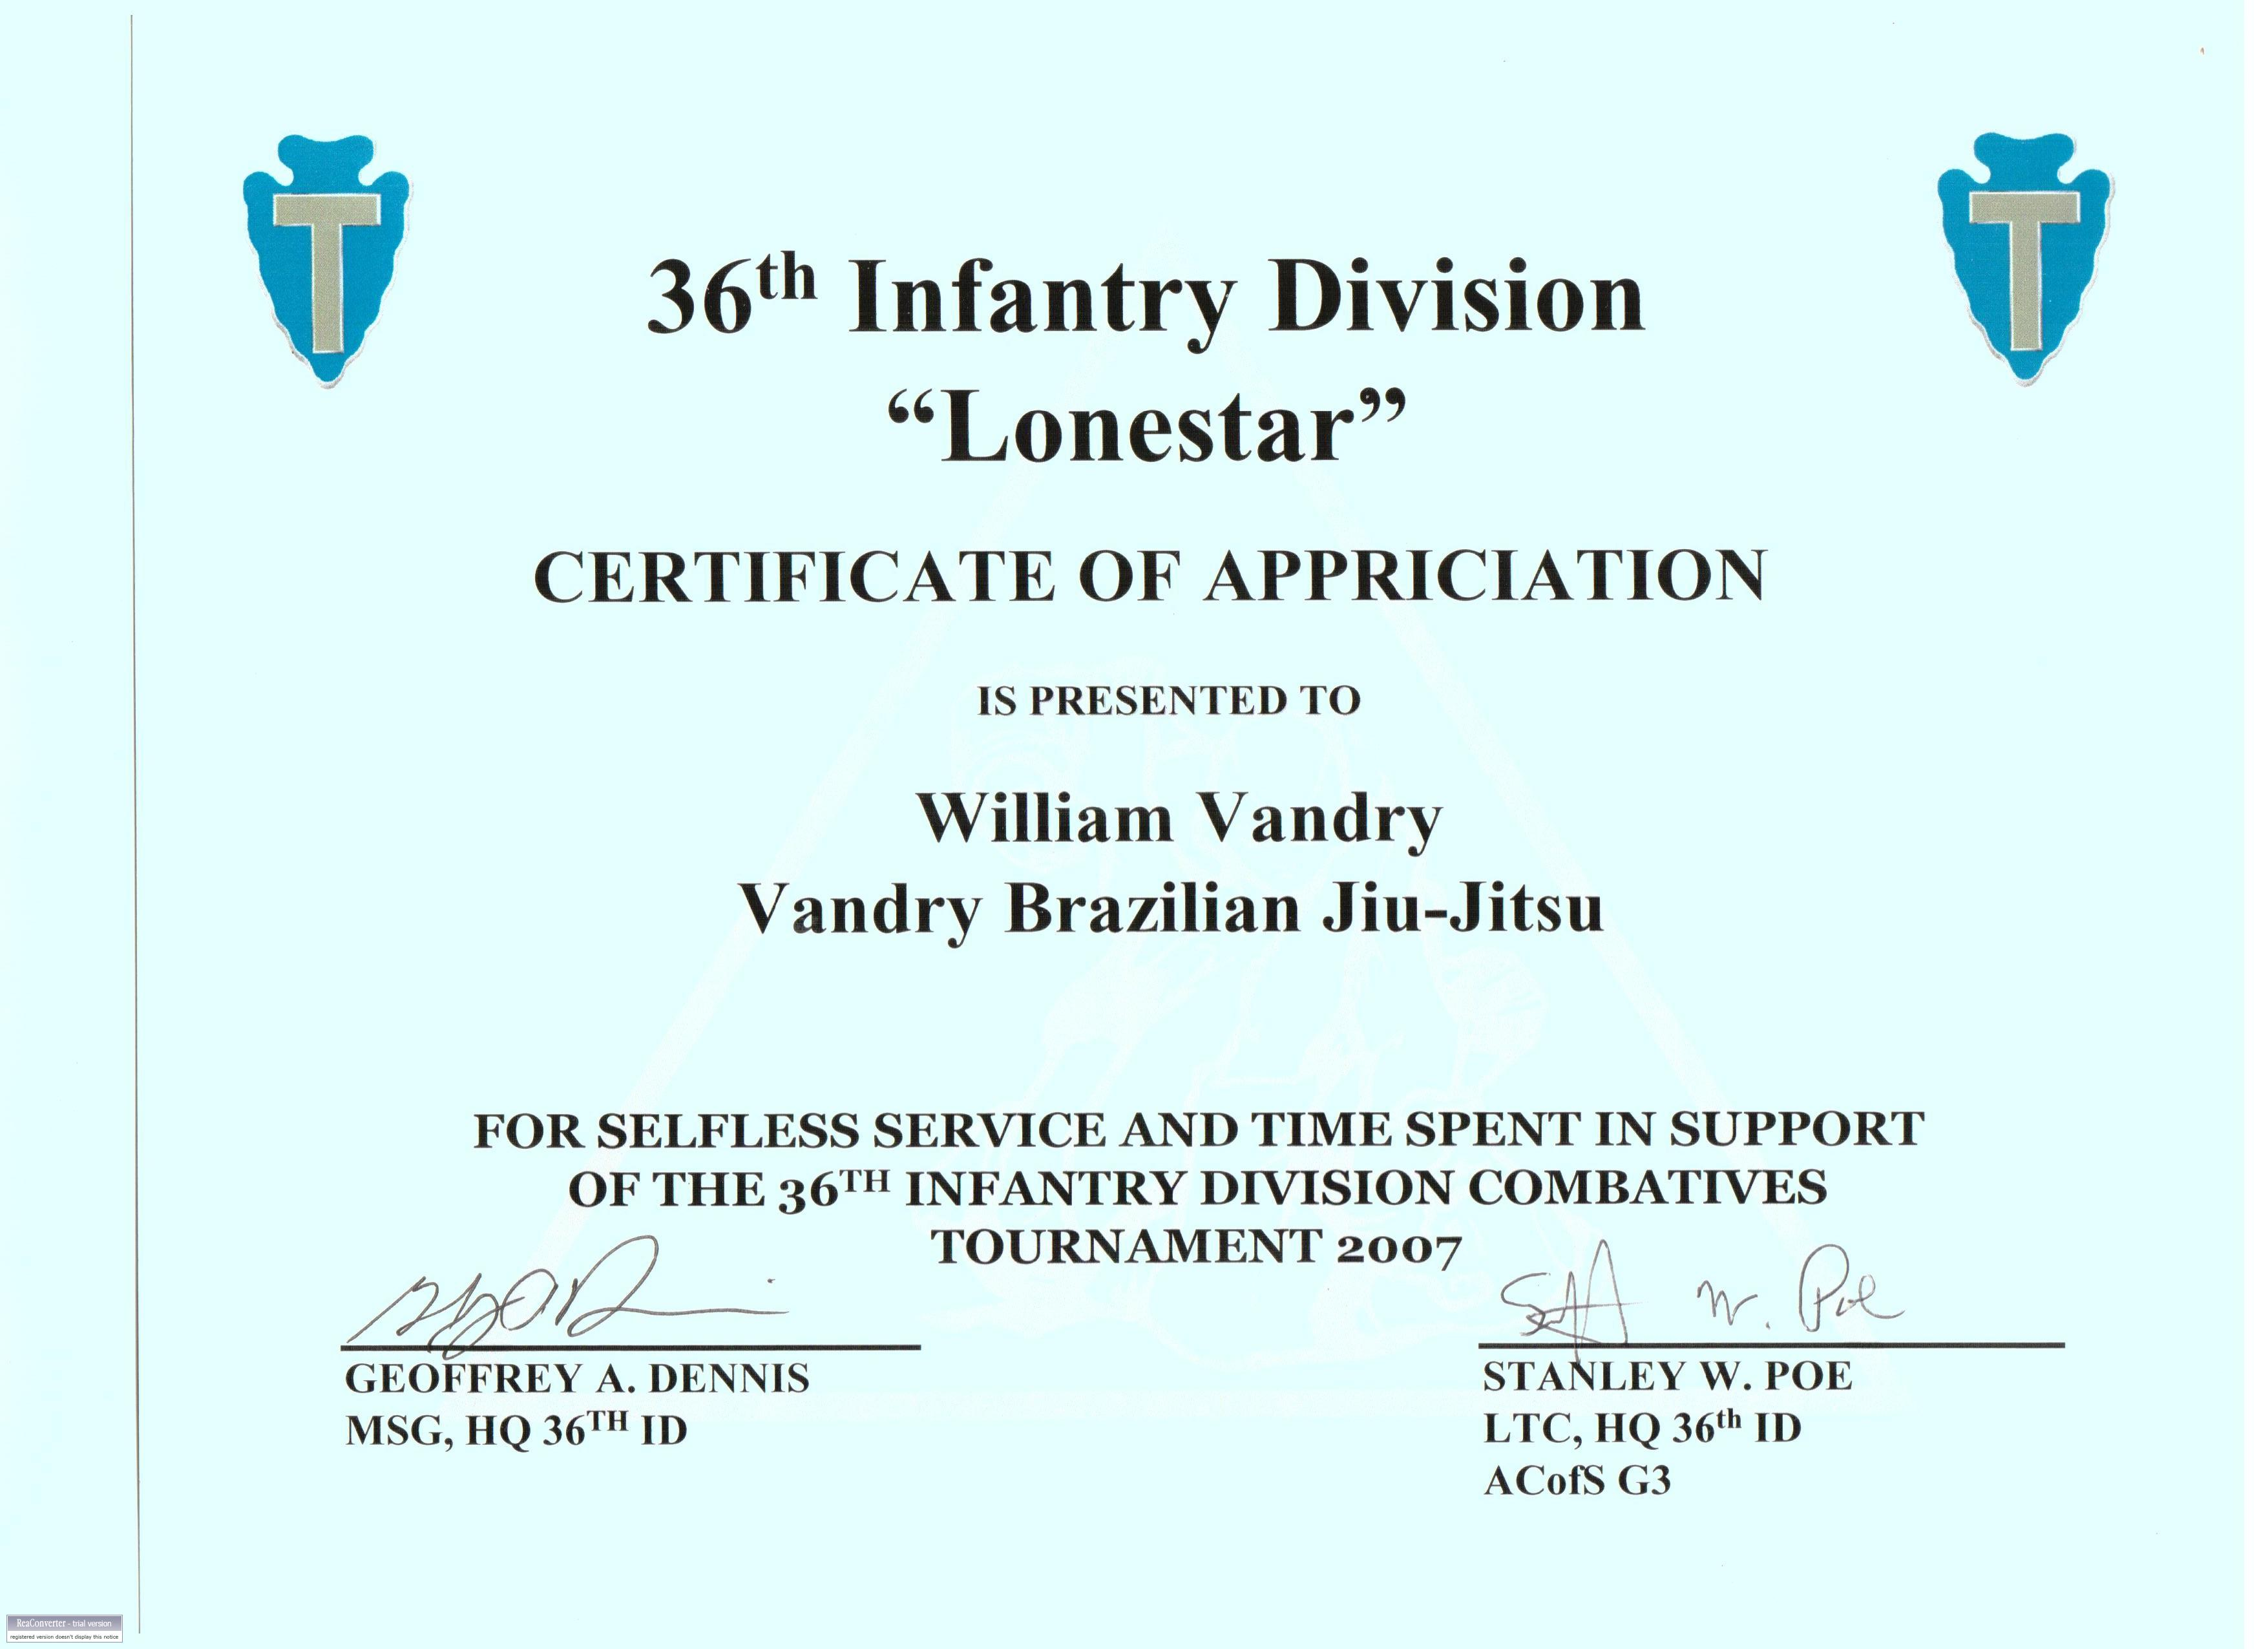 William Vandry William Vandry Community – Army Certificate of Appreciation